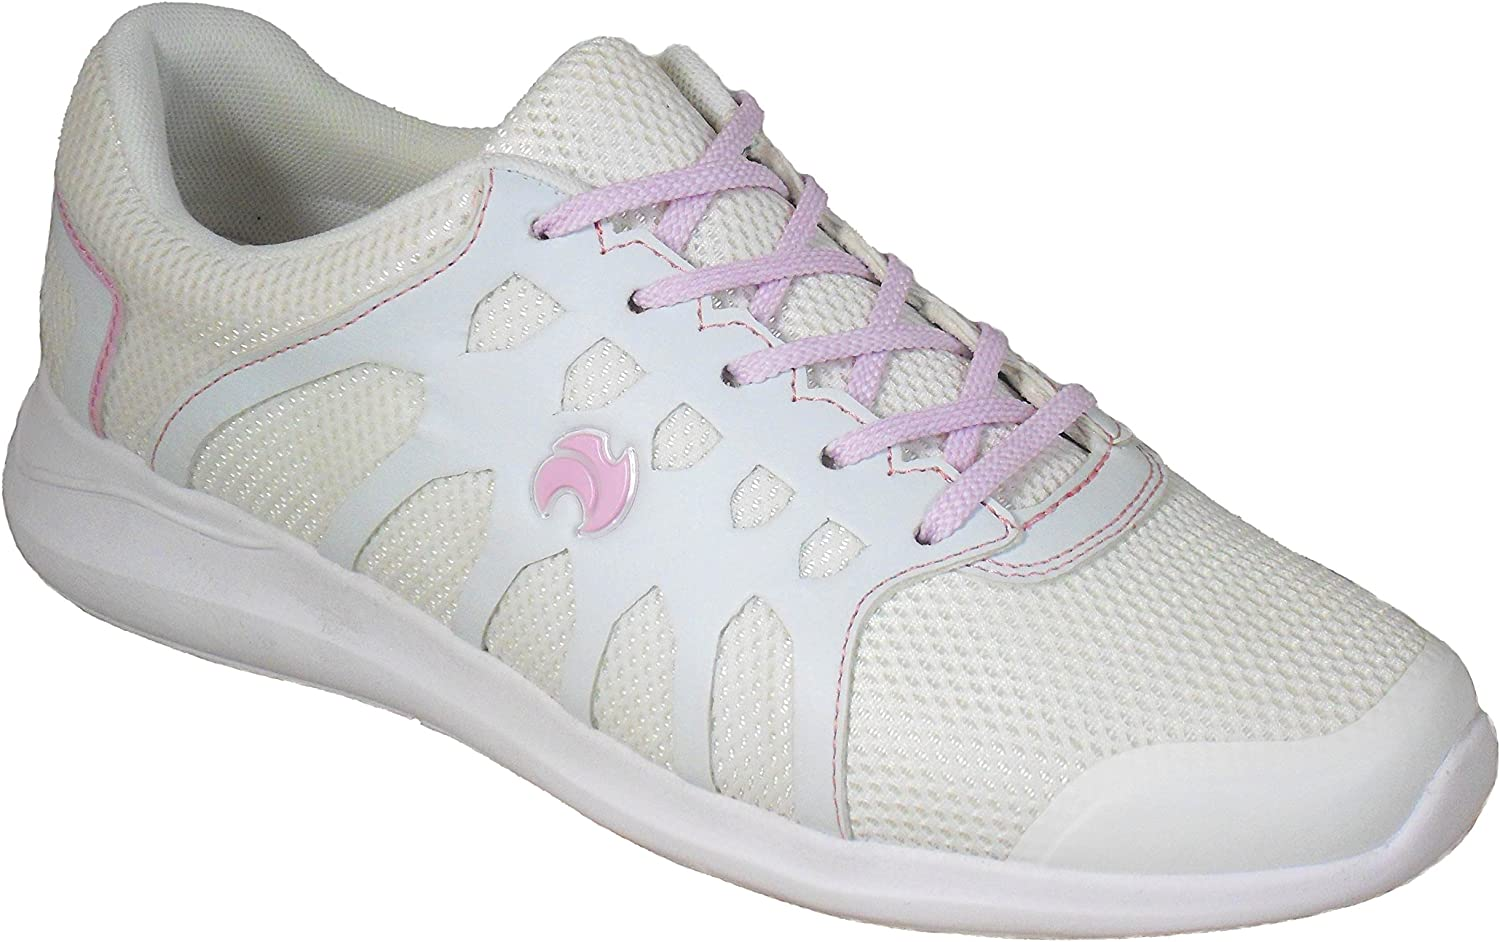 Womens New White Lightweight Bowling Trainers Shoes Size 3 4 5 6 7 8